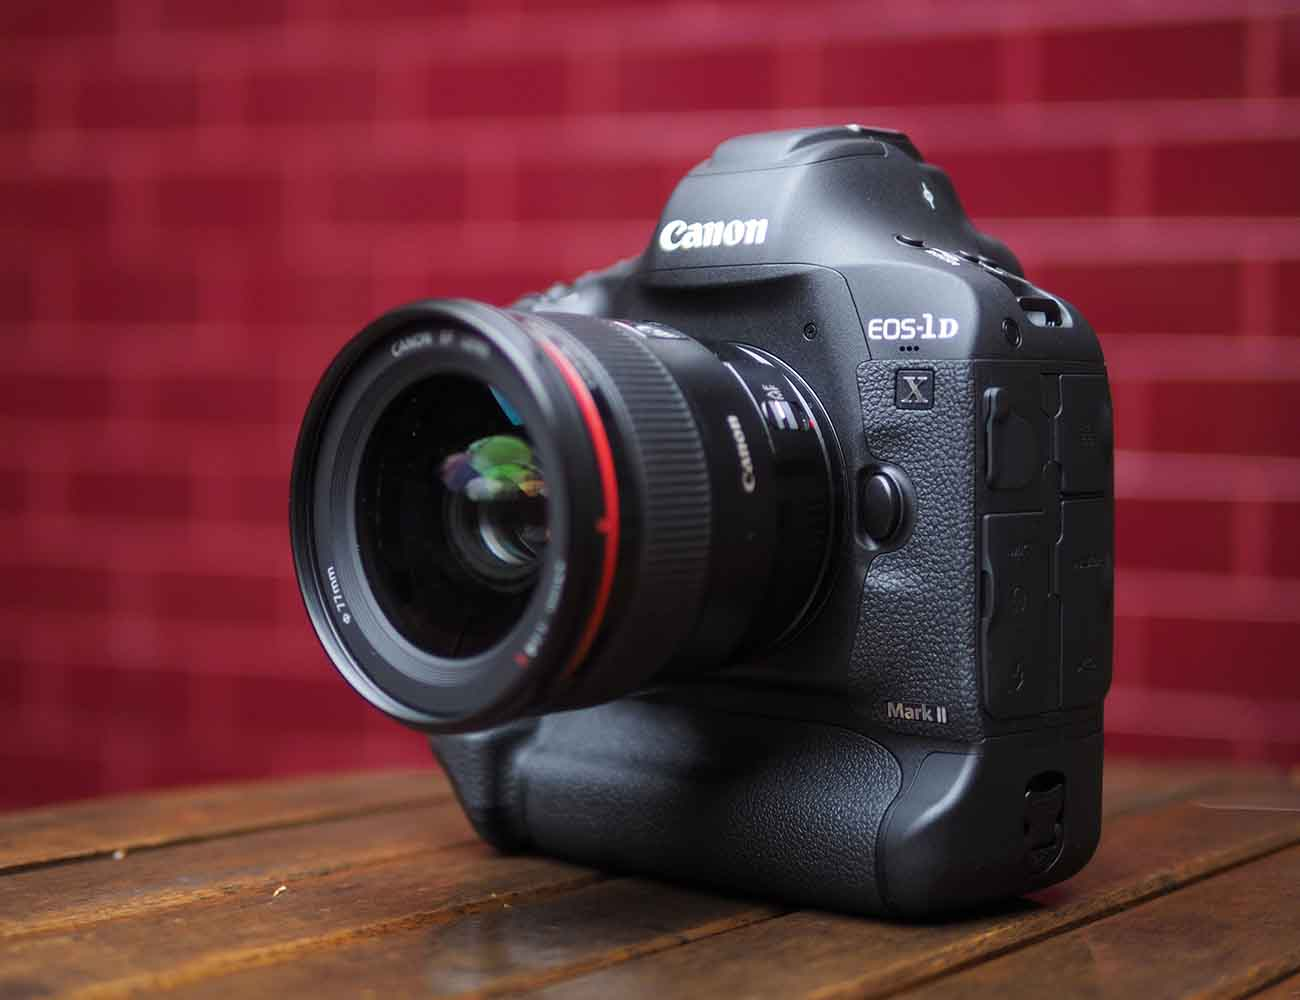 Canon+EOS-1D+Mark+II+DSLR+With+4K+Video